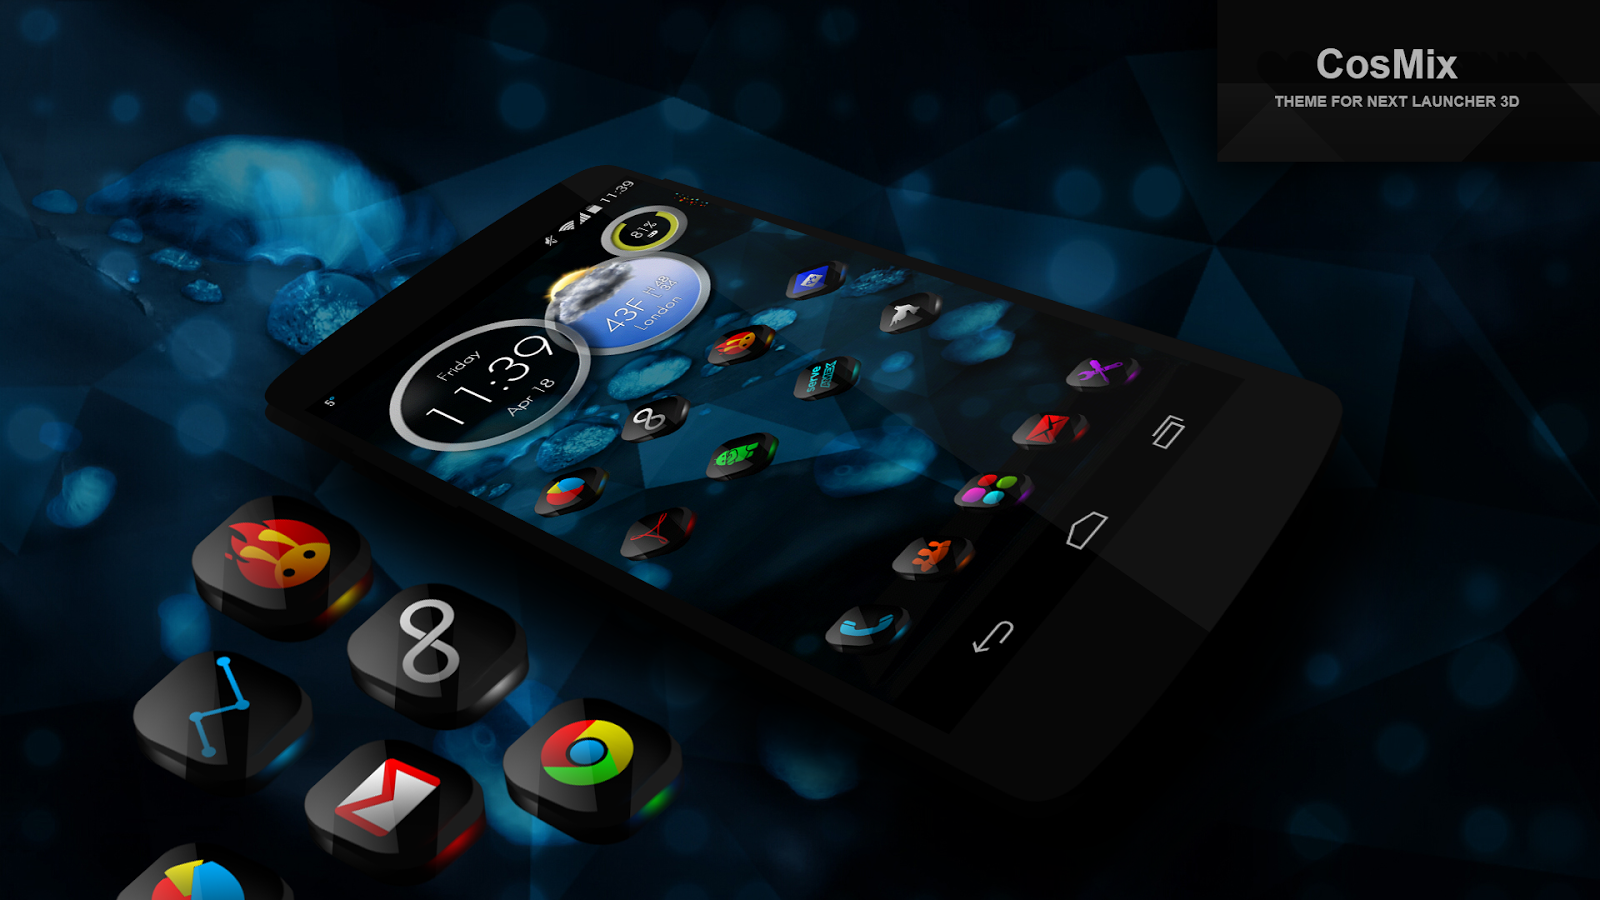 Next launcher theme cosmix 3d android apps on google play for Wallpaper home launcher